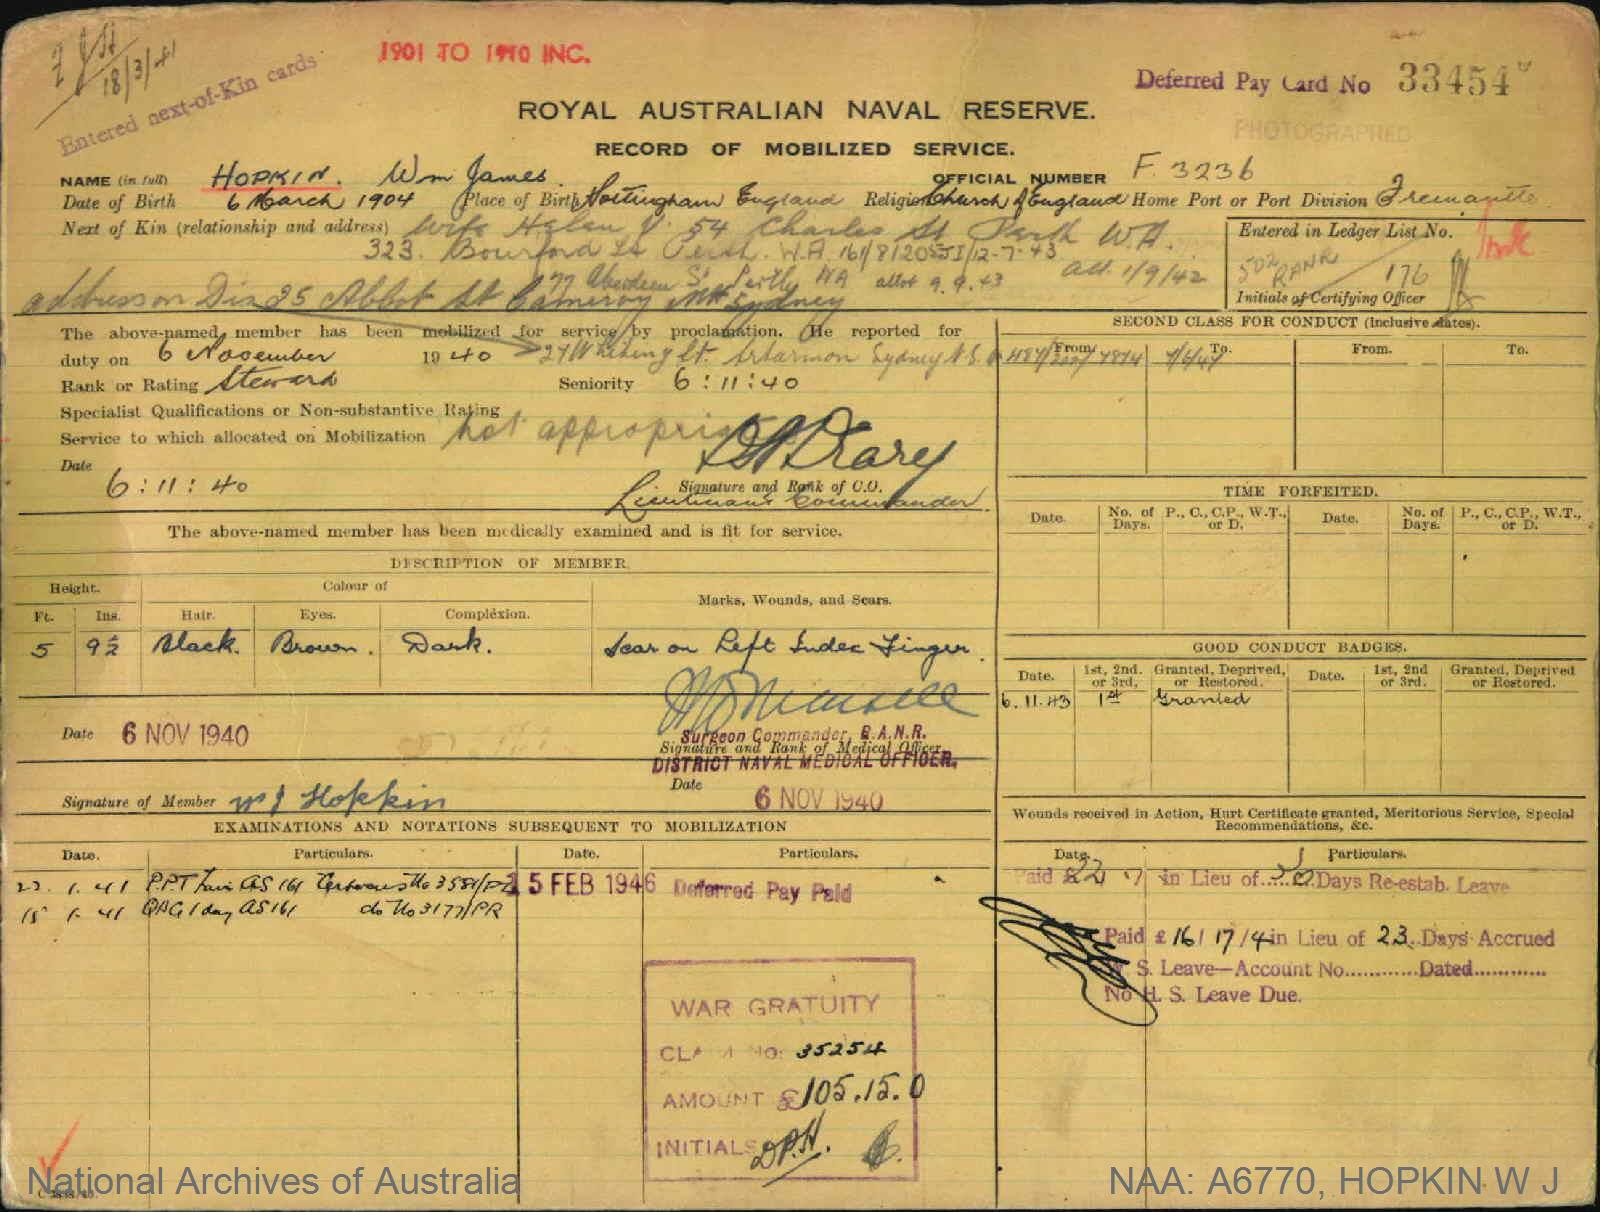 HOPKIN W JAMES : Service Number - F3236 : Date of birth - 06 Mar 1904 : Place of birth - NOTTINGHAM ENGLAND : Place of enlistment - FREMANTLE WA : Next of Kin - HELEN